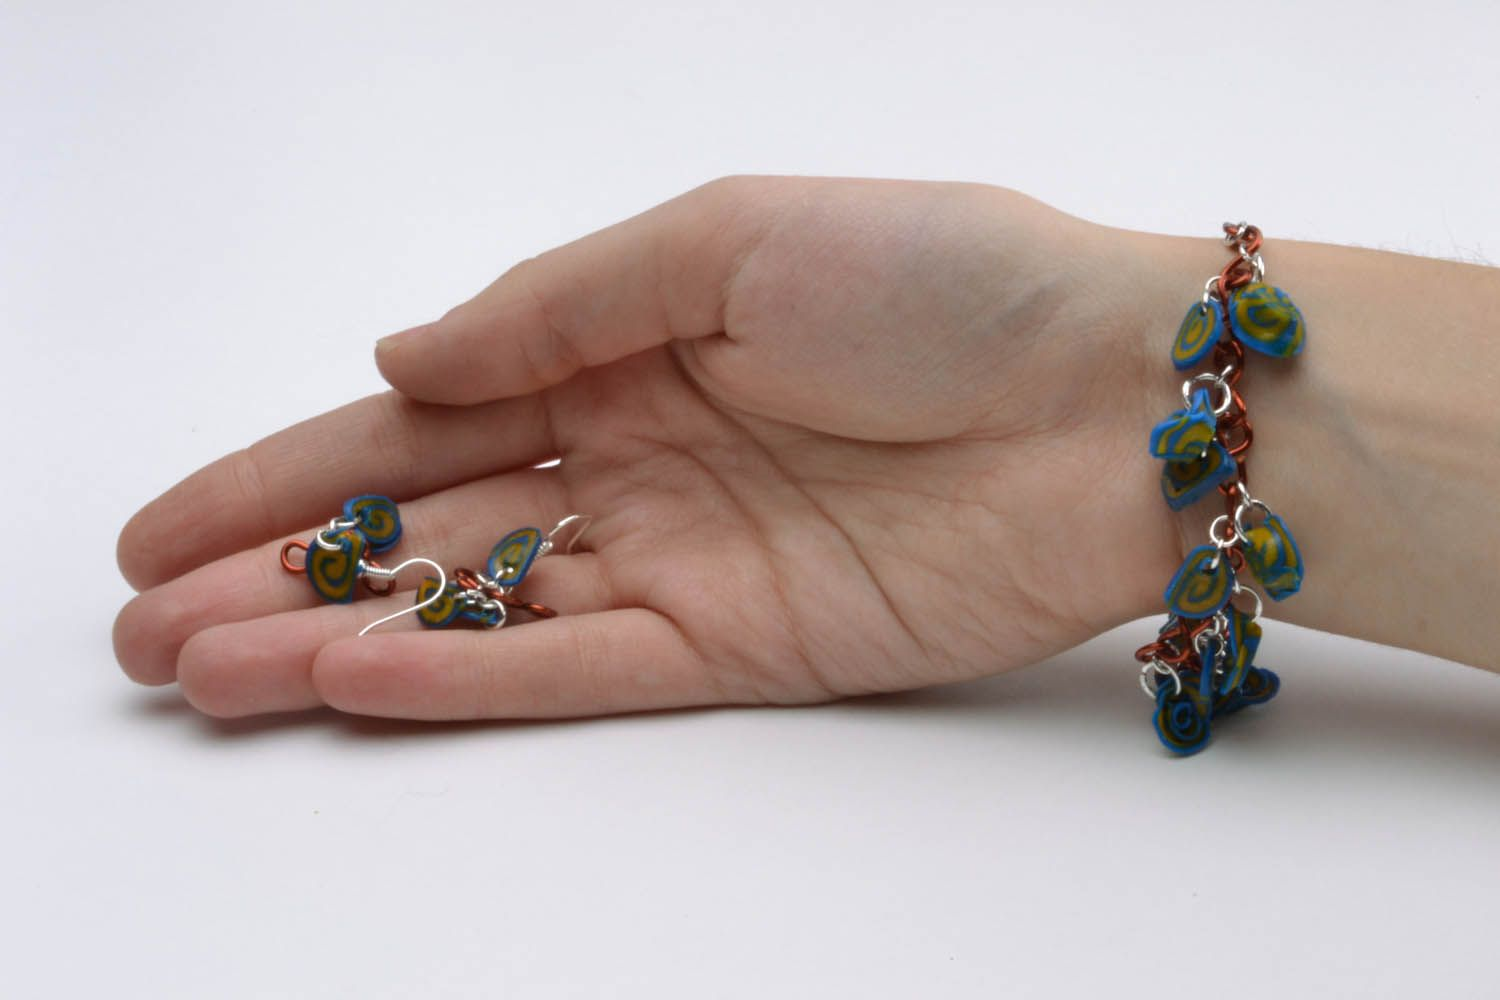 Polymer clay earrings and bracelet photo 5